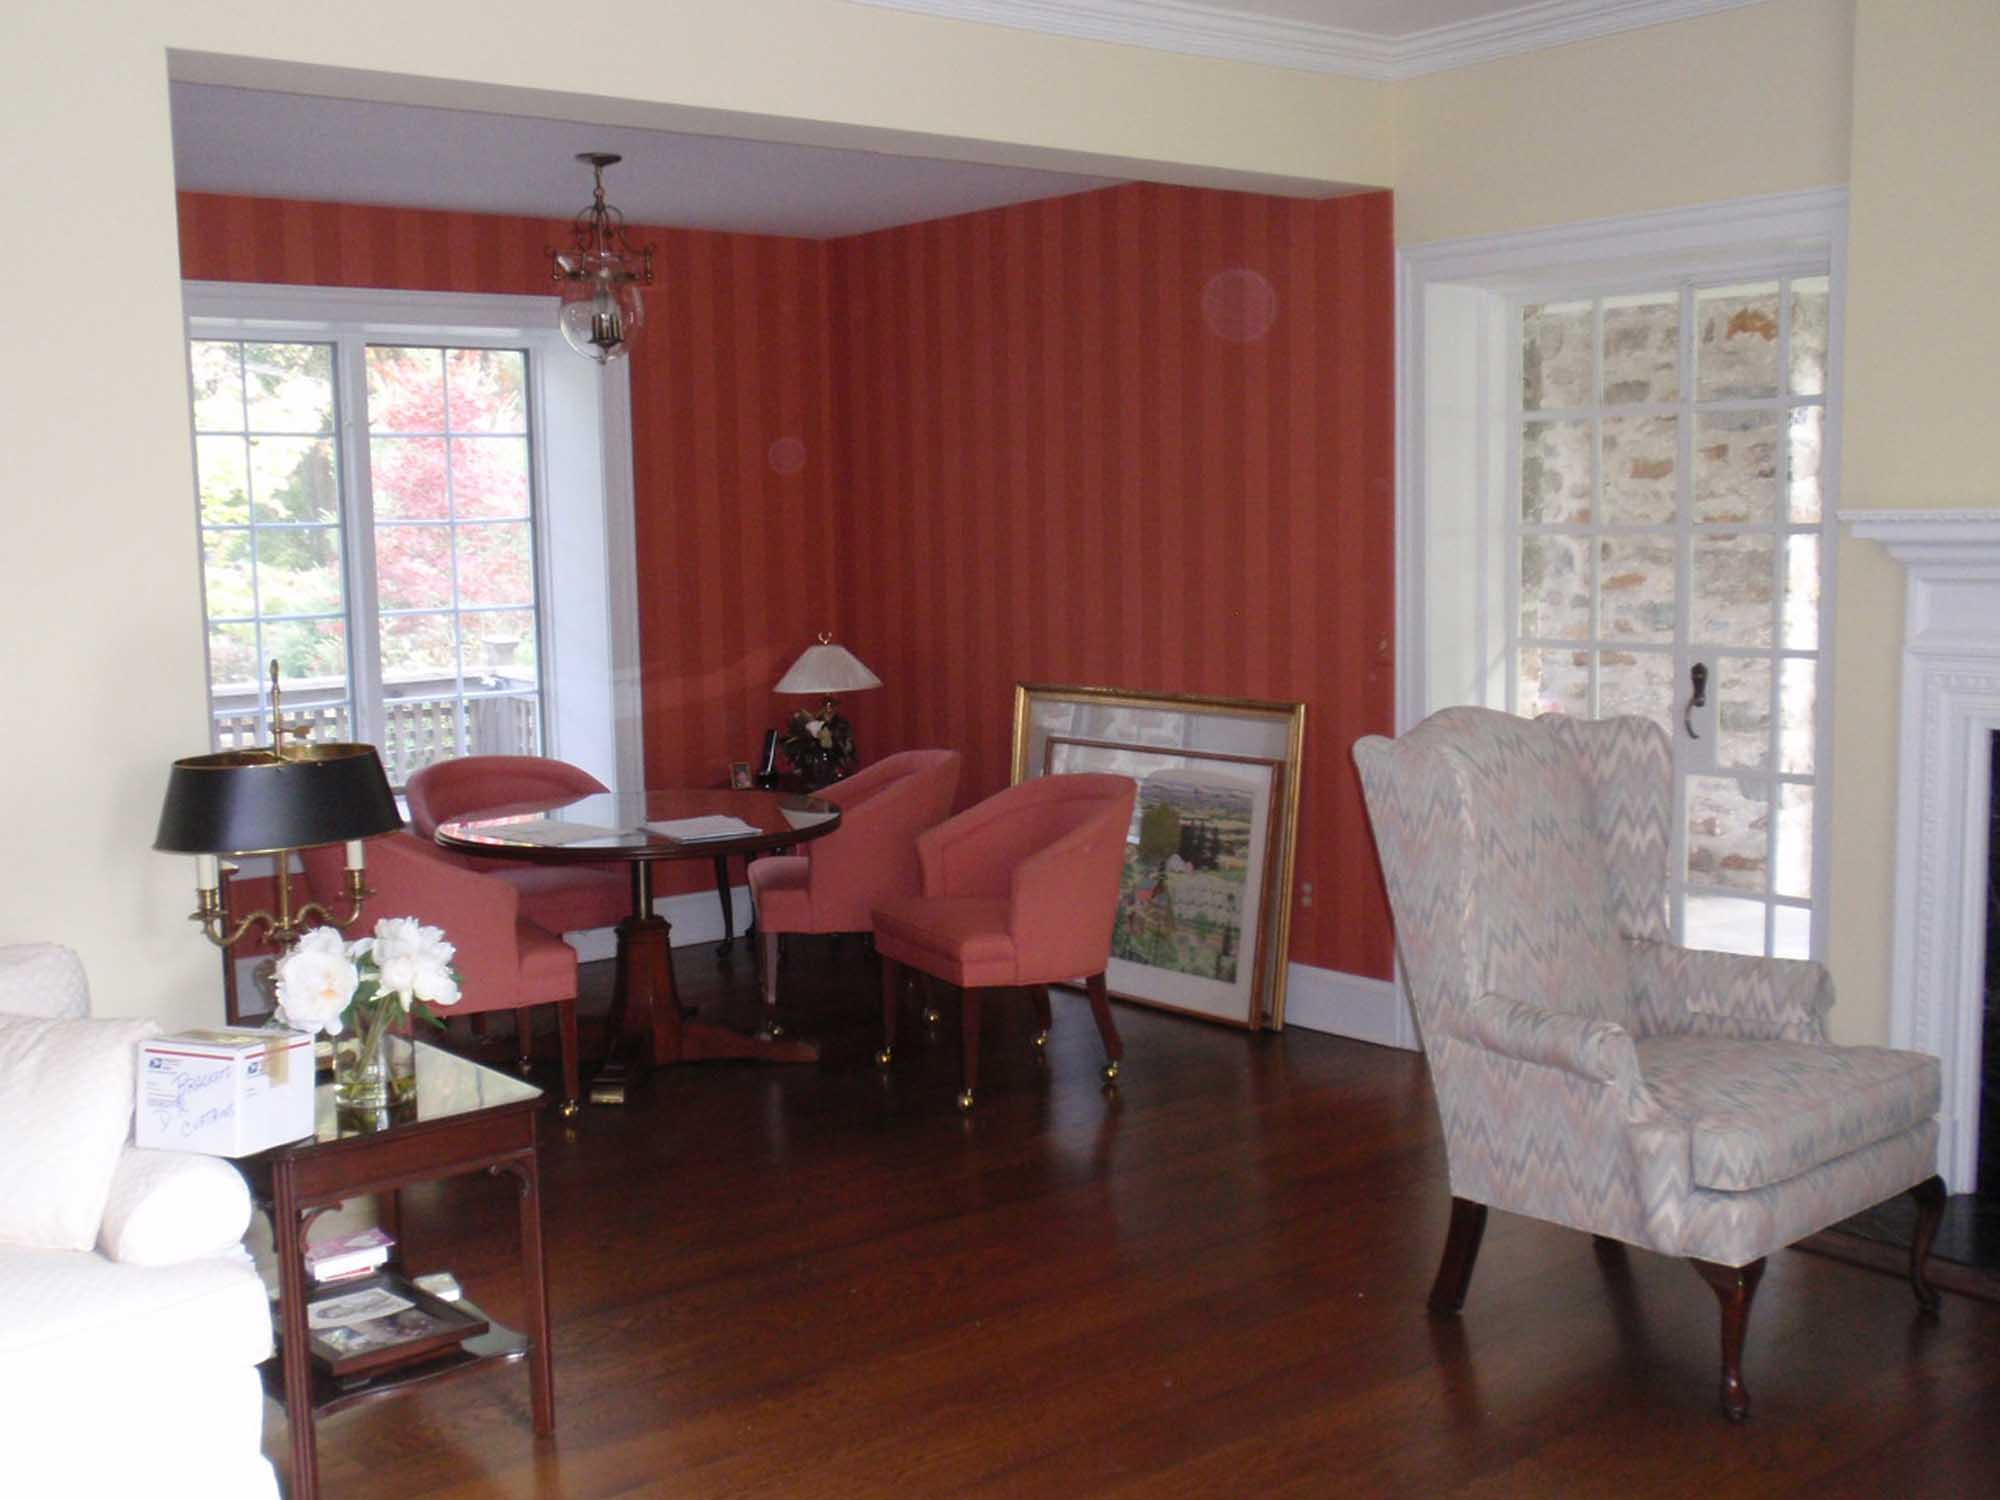 Dining area with red wallpaper and glass table for four